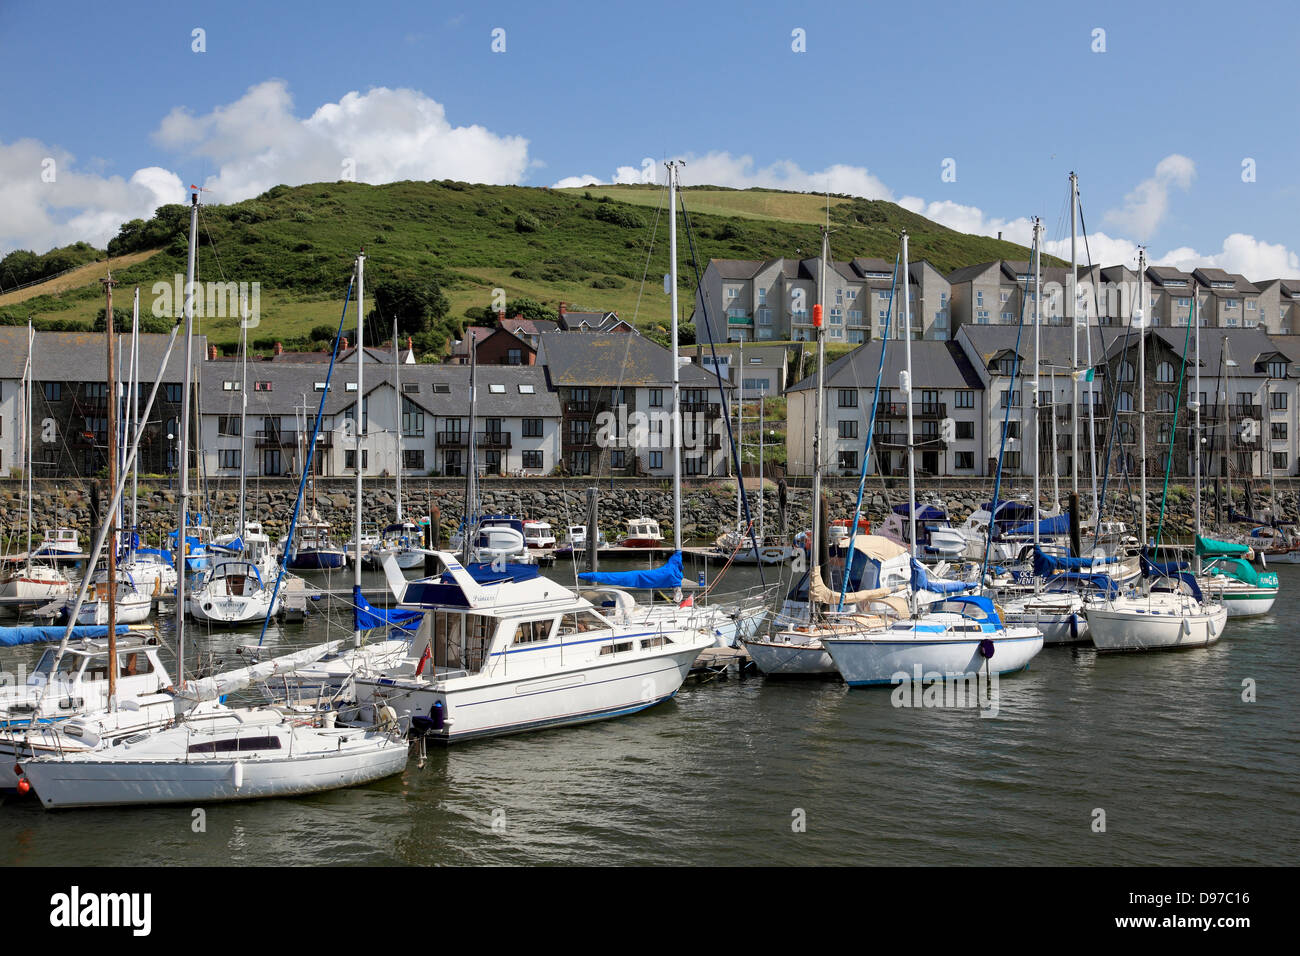 The Marina at Aberystwyth with Pendinas hill in the background - Stock Image